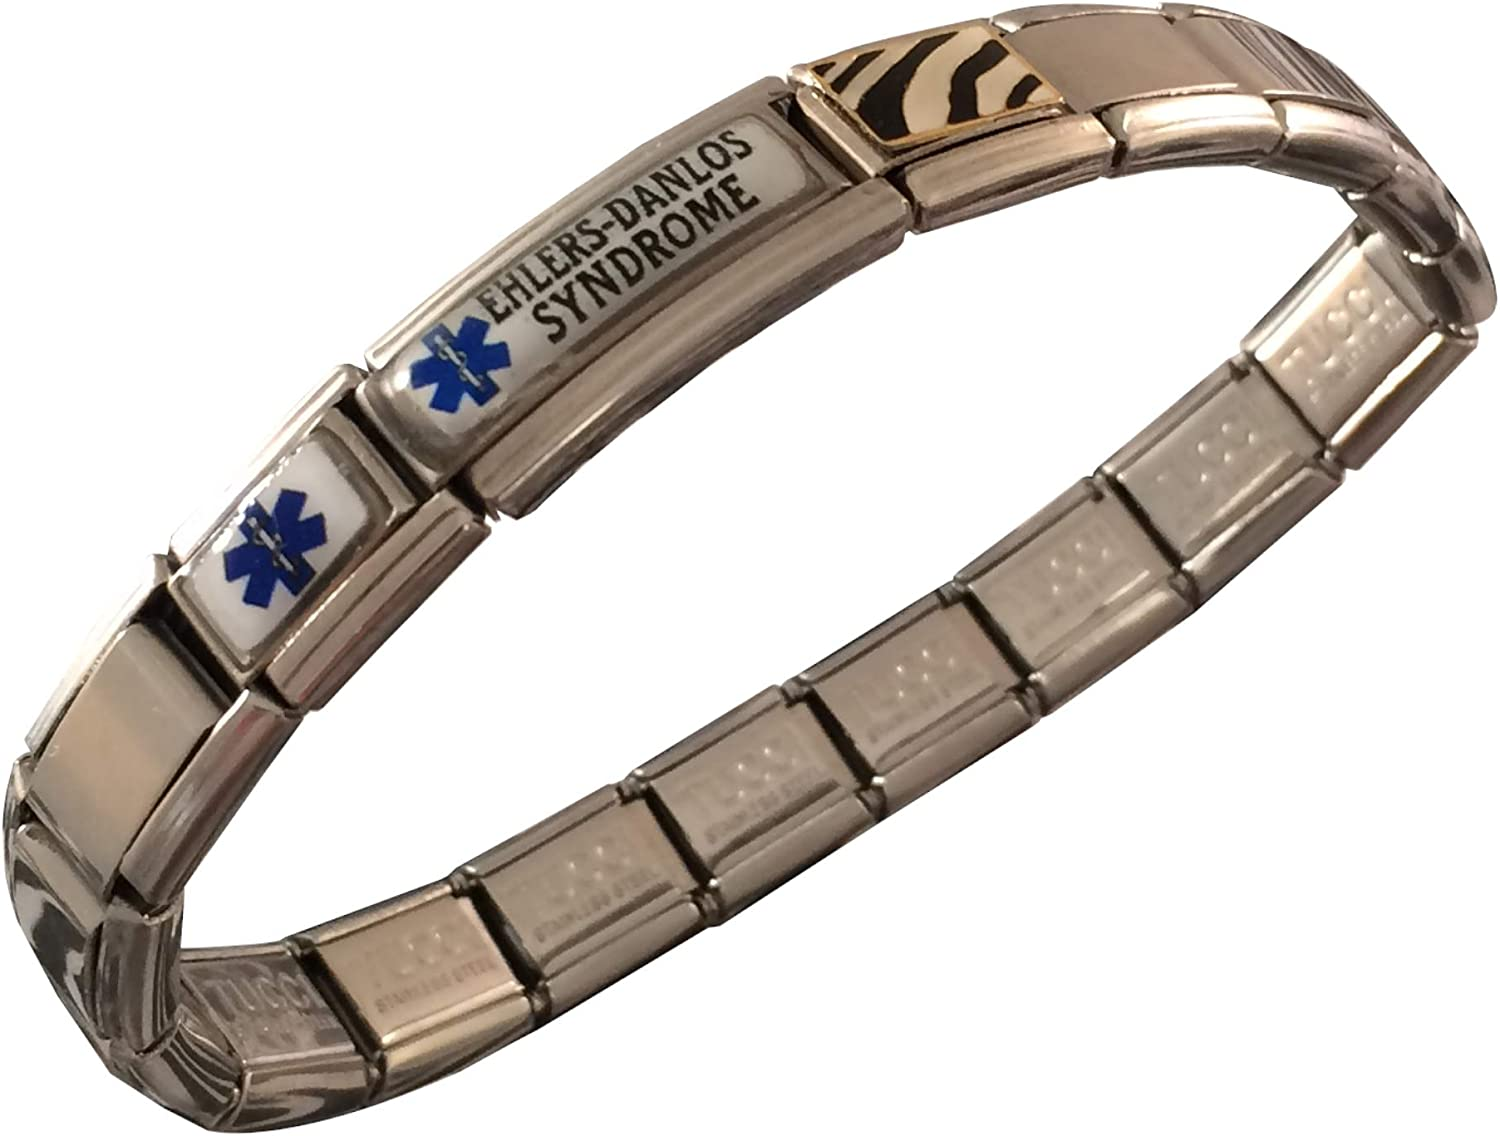 Ladies stainless steel expandable bangle with engraved ID charm EDS Lure by Butler /& Grace Ehlers Danlos Syndrome Medical Alert Bracelet